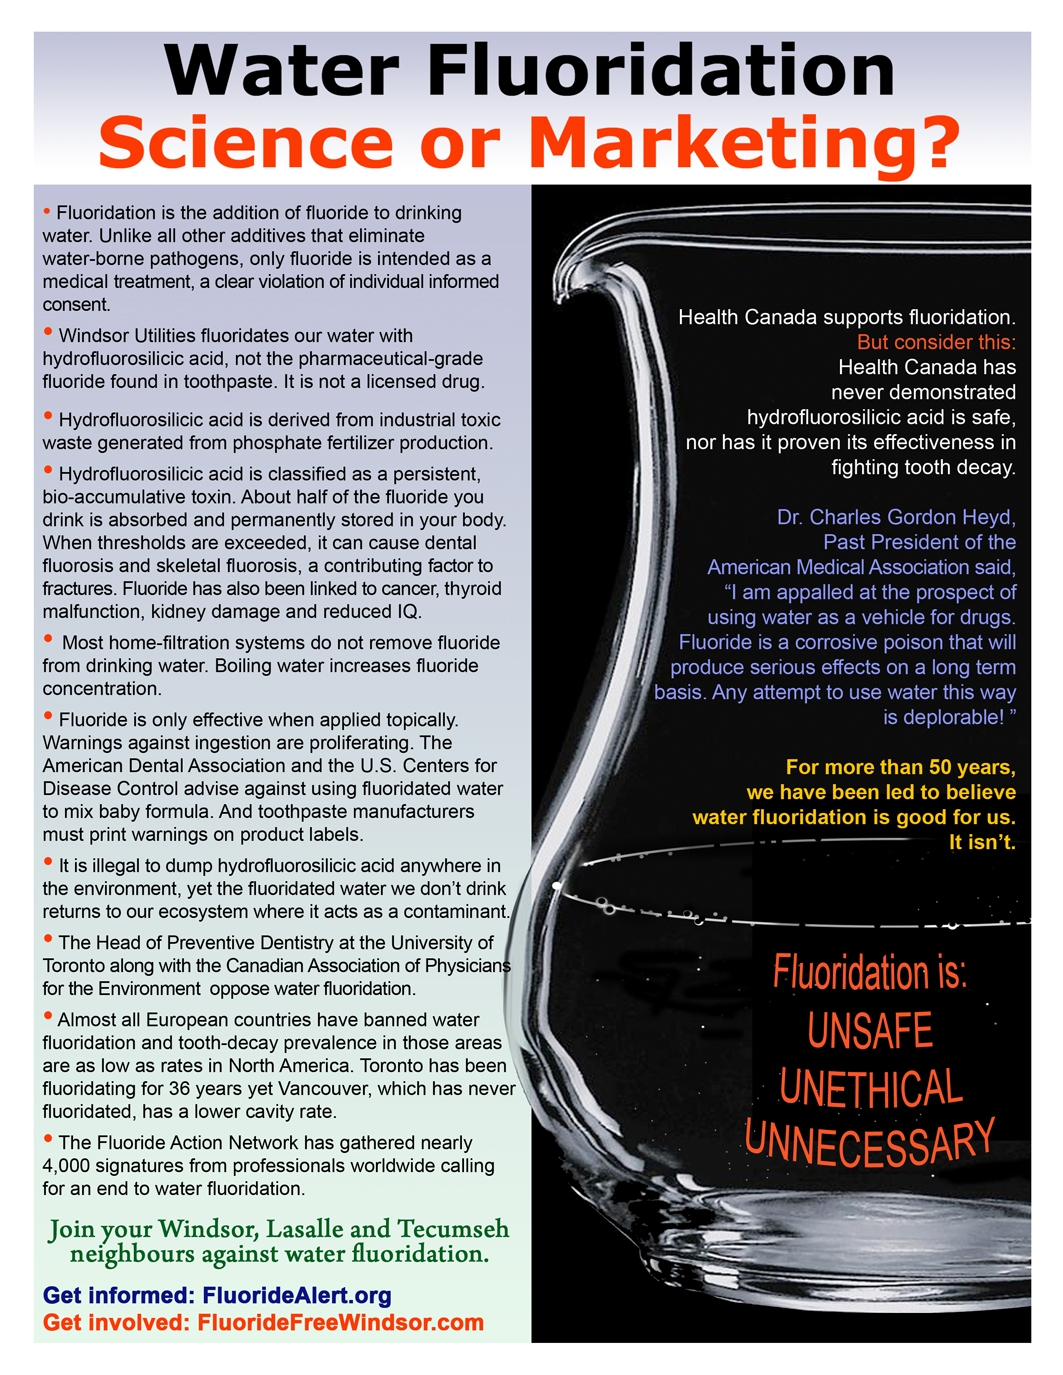 the use and effects of fluoridation Read chapter 4 effects of fluoride on teeth: most people associate fluoride with the practice of intentionally adding fluoride to public drinking water su.